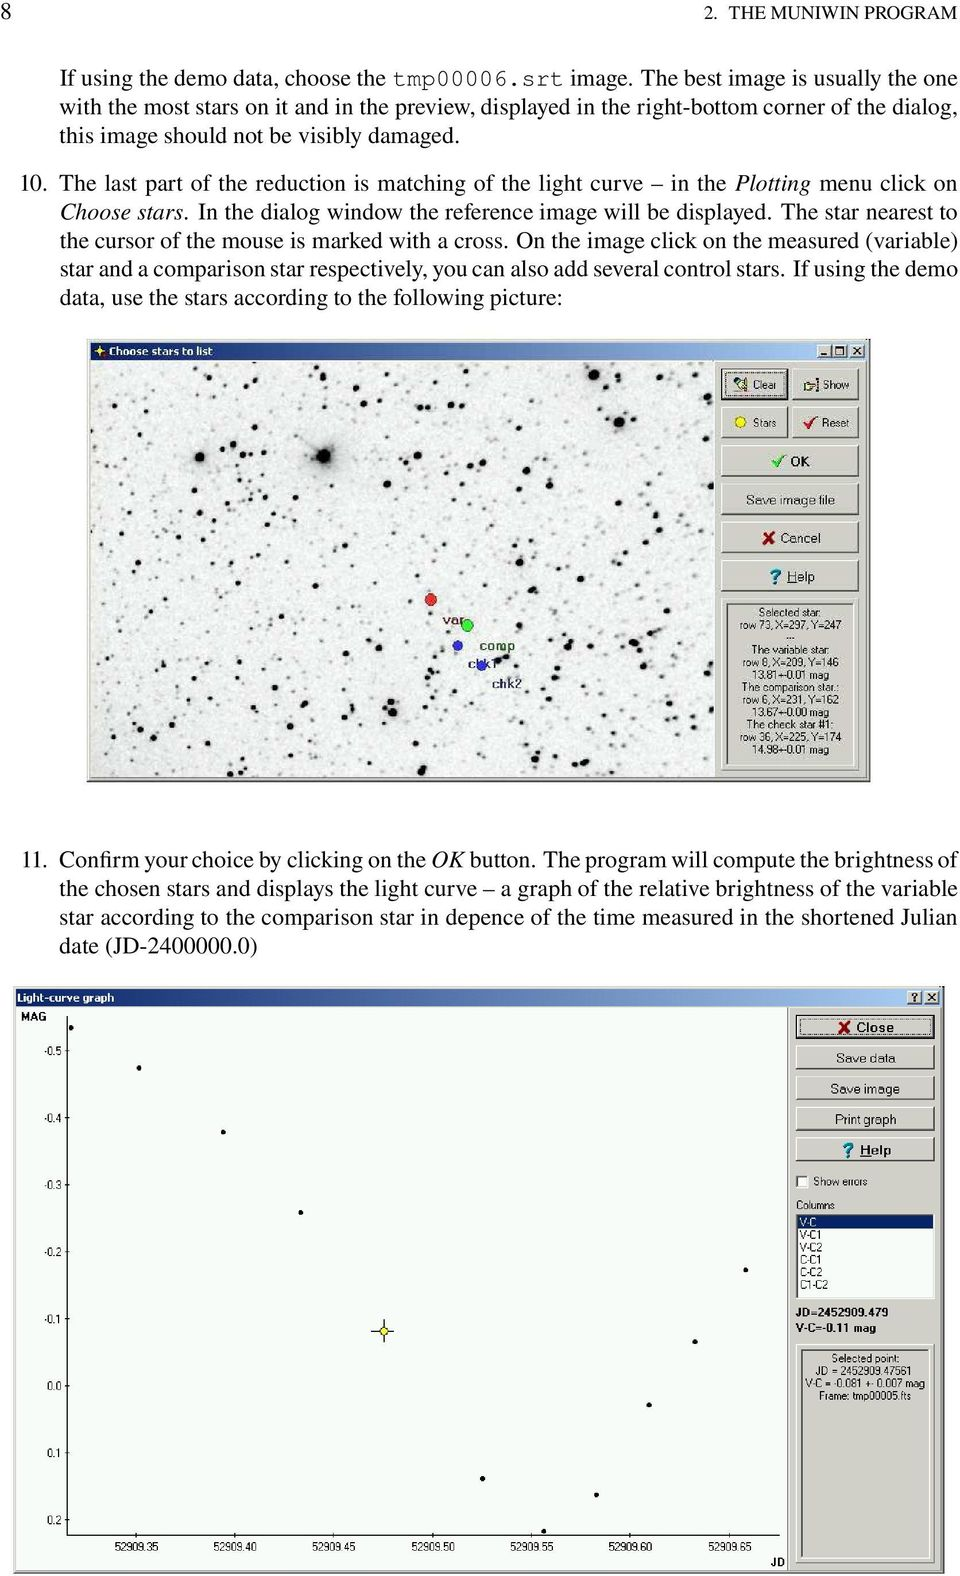 The last part of the reduction is matching of the light curve in the Plotting menu click on Choose stars. In the dialog window the reference image will be displayed.